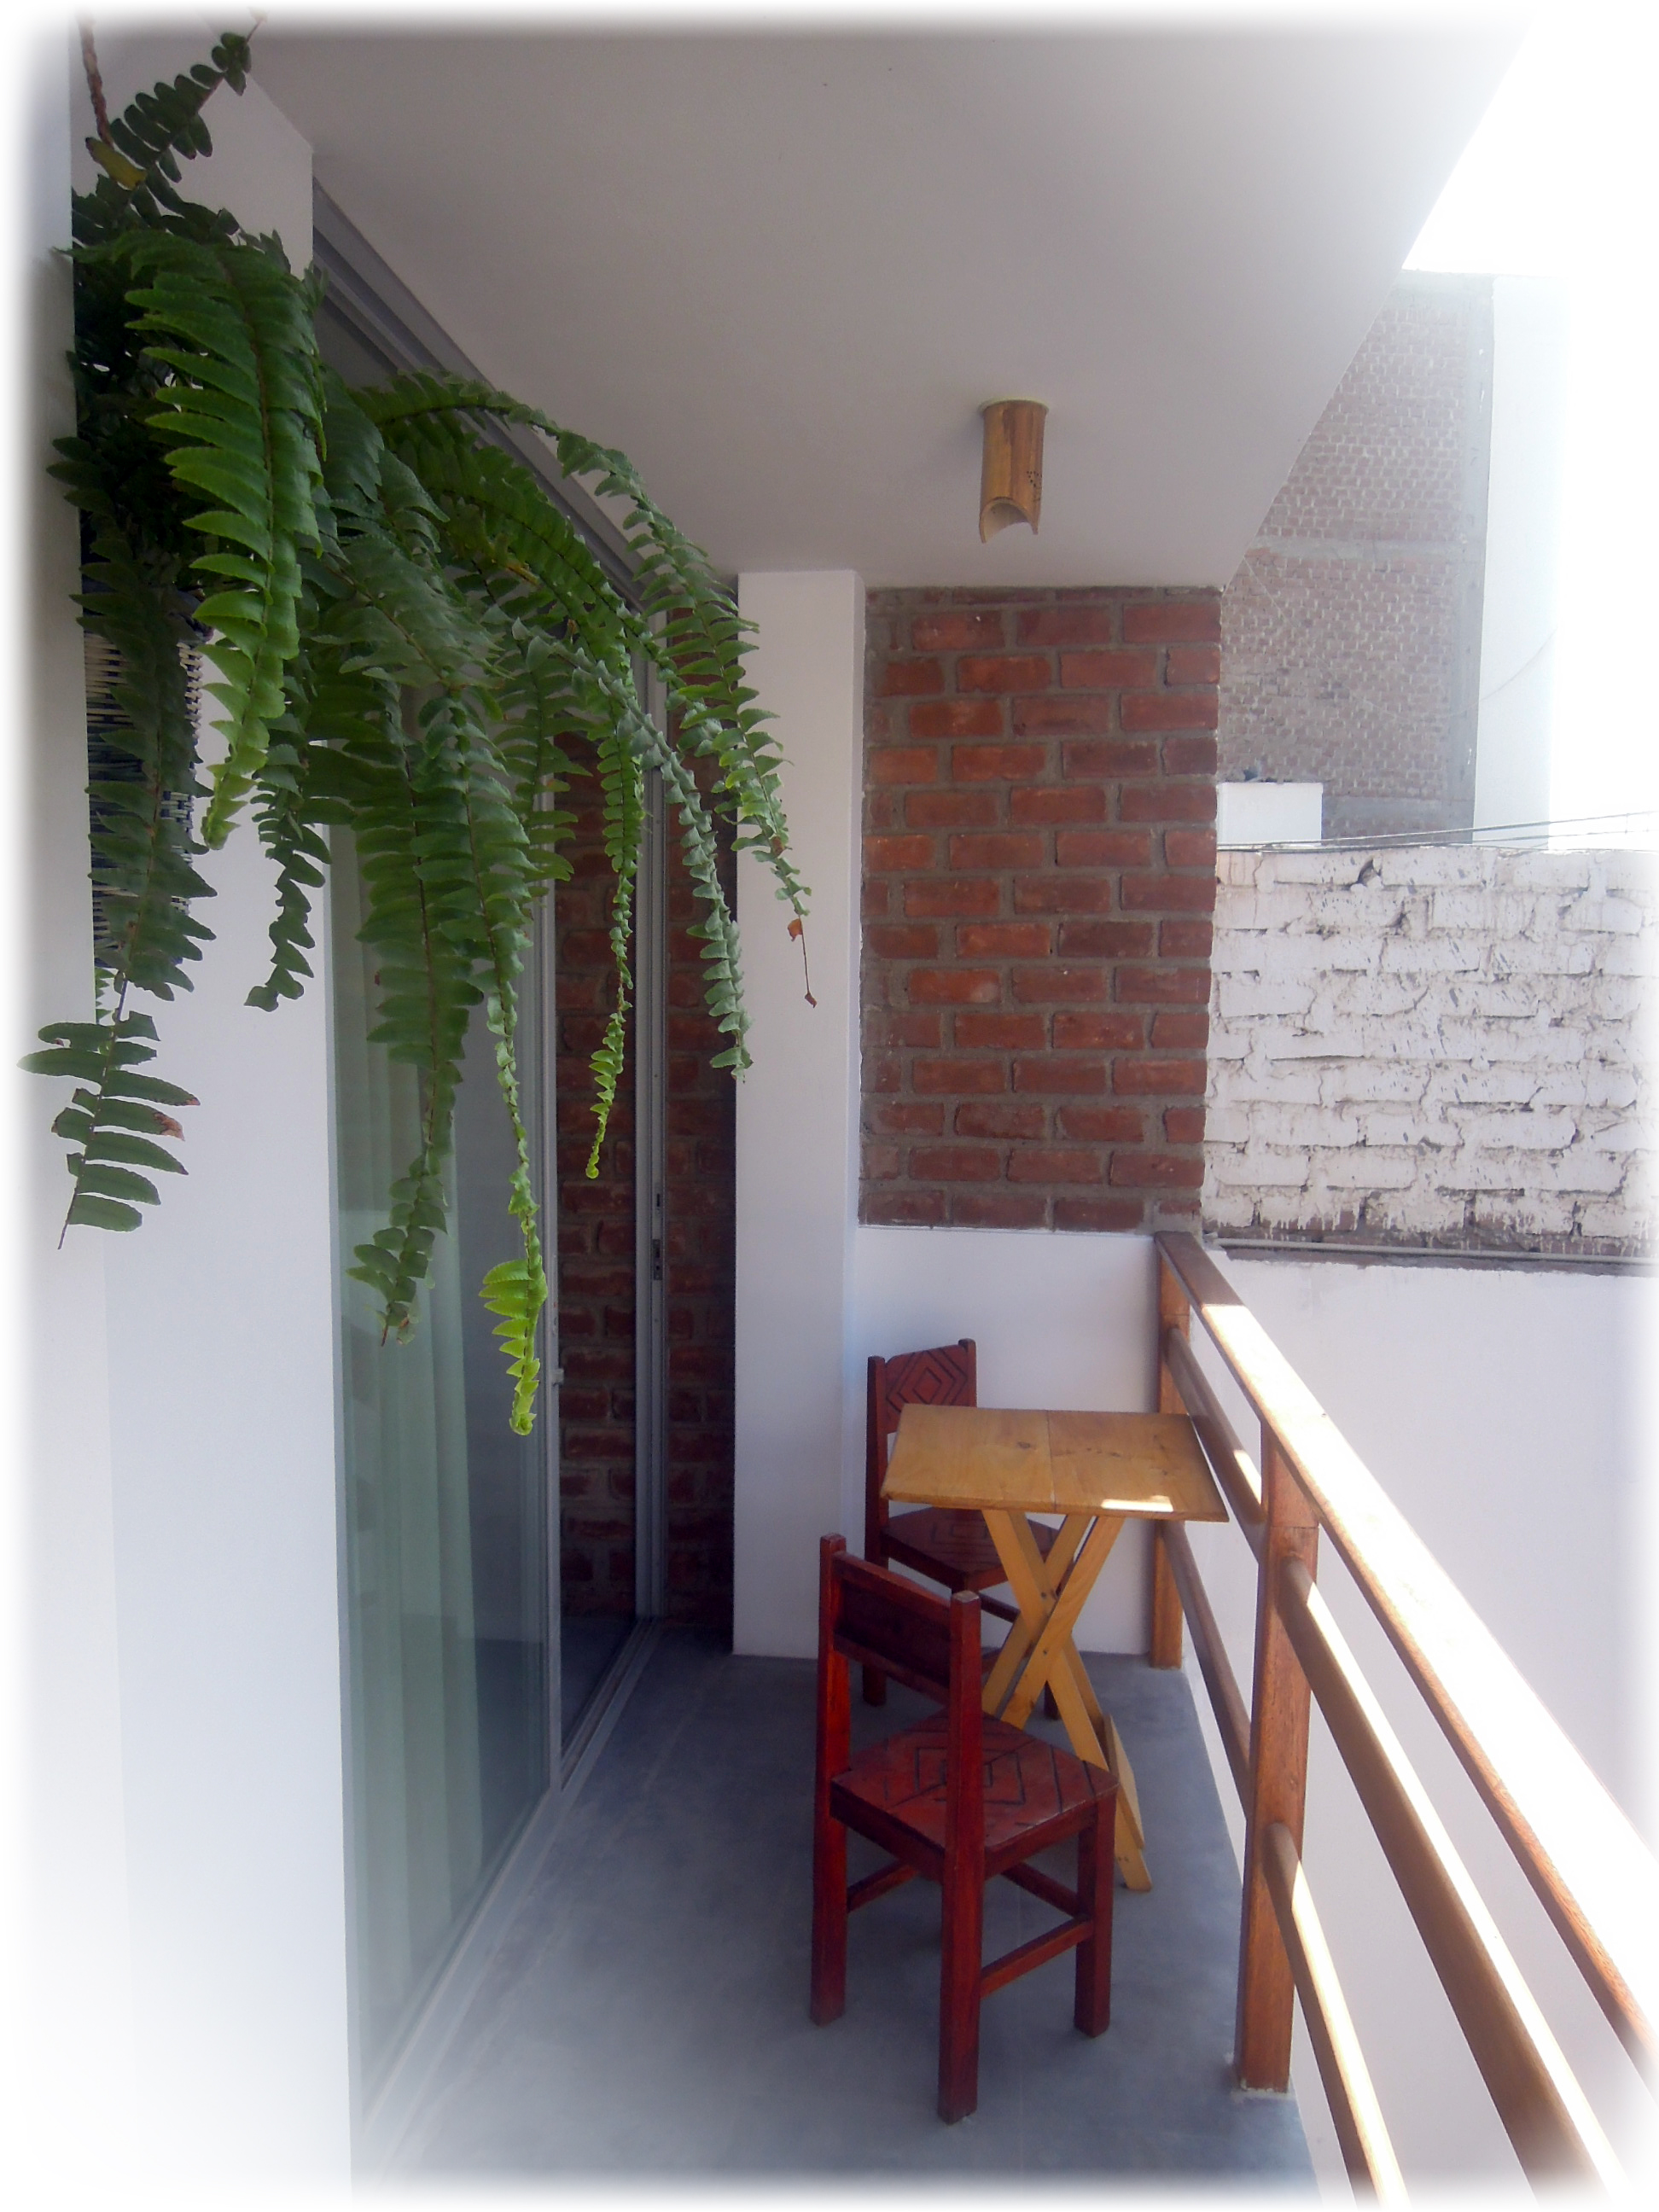 ATMA Hostel & Yoga